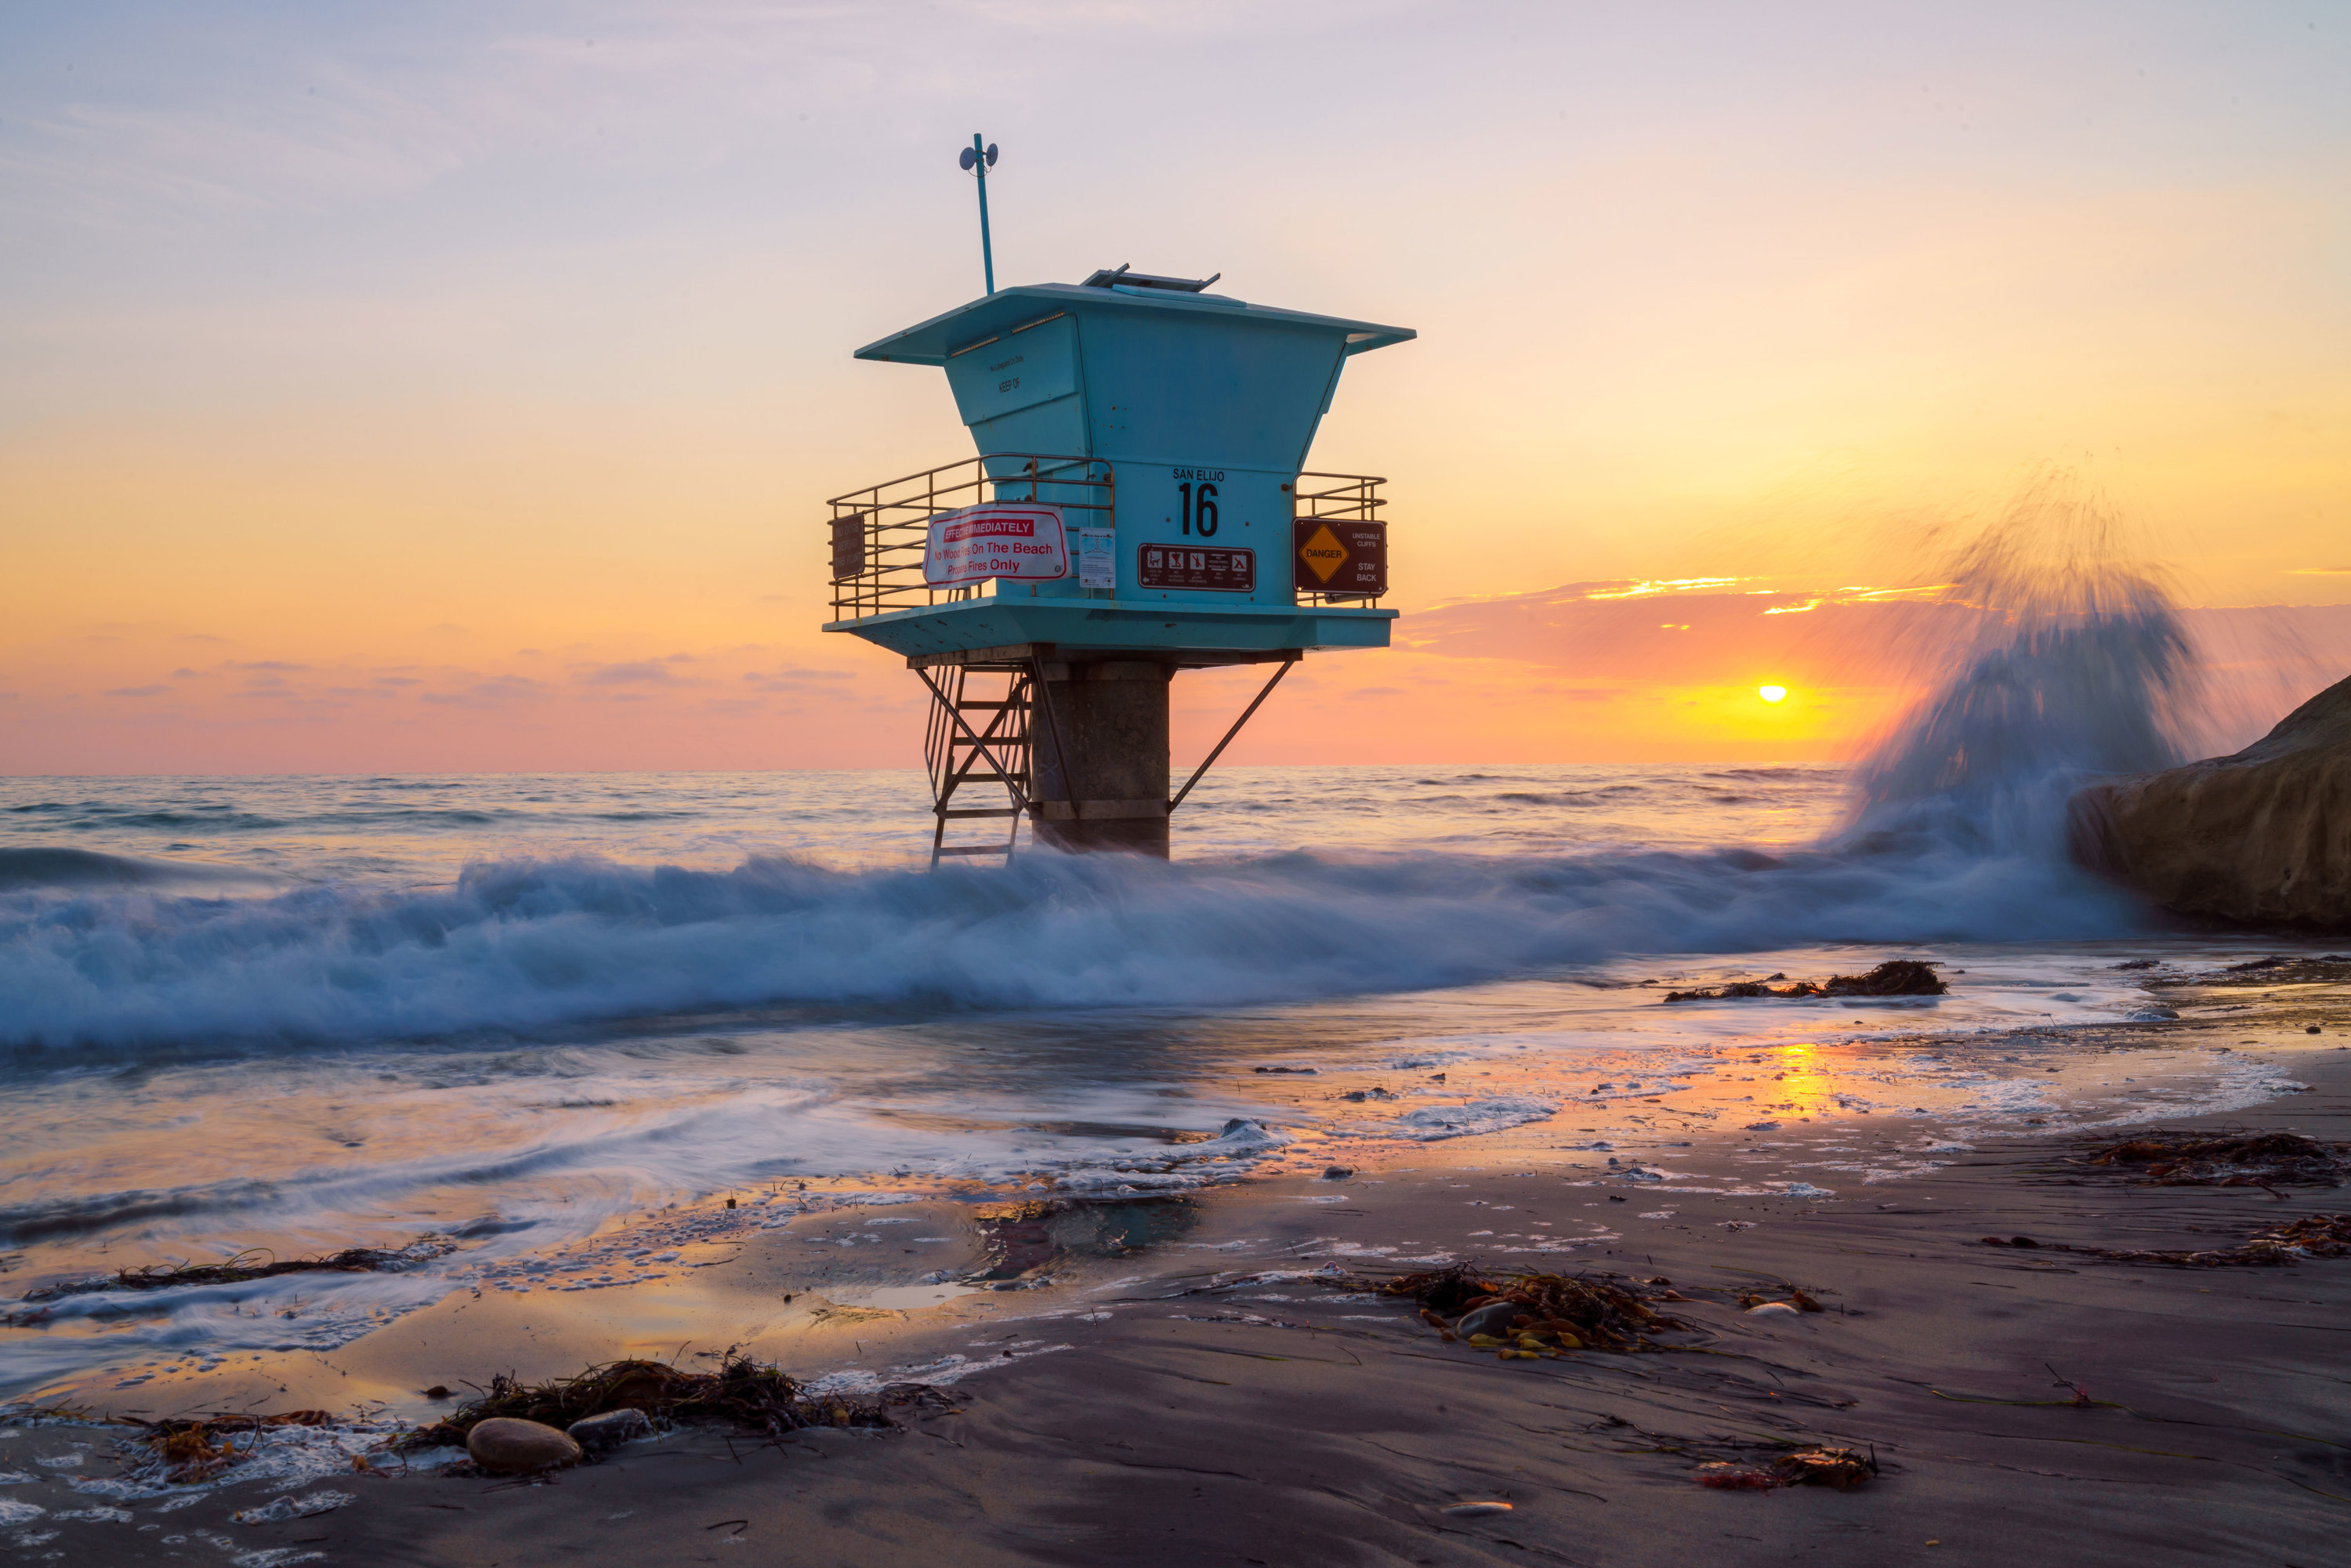 <div class='title'>           Life Guard Tower and Waves on Rocks in Encinitas, California          </div>